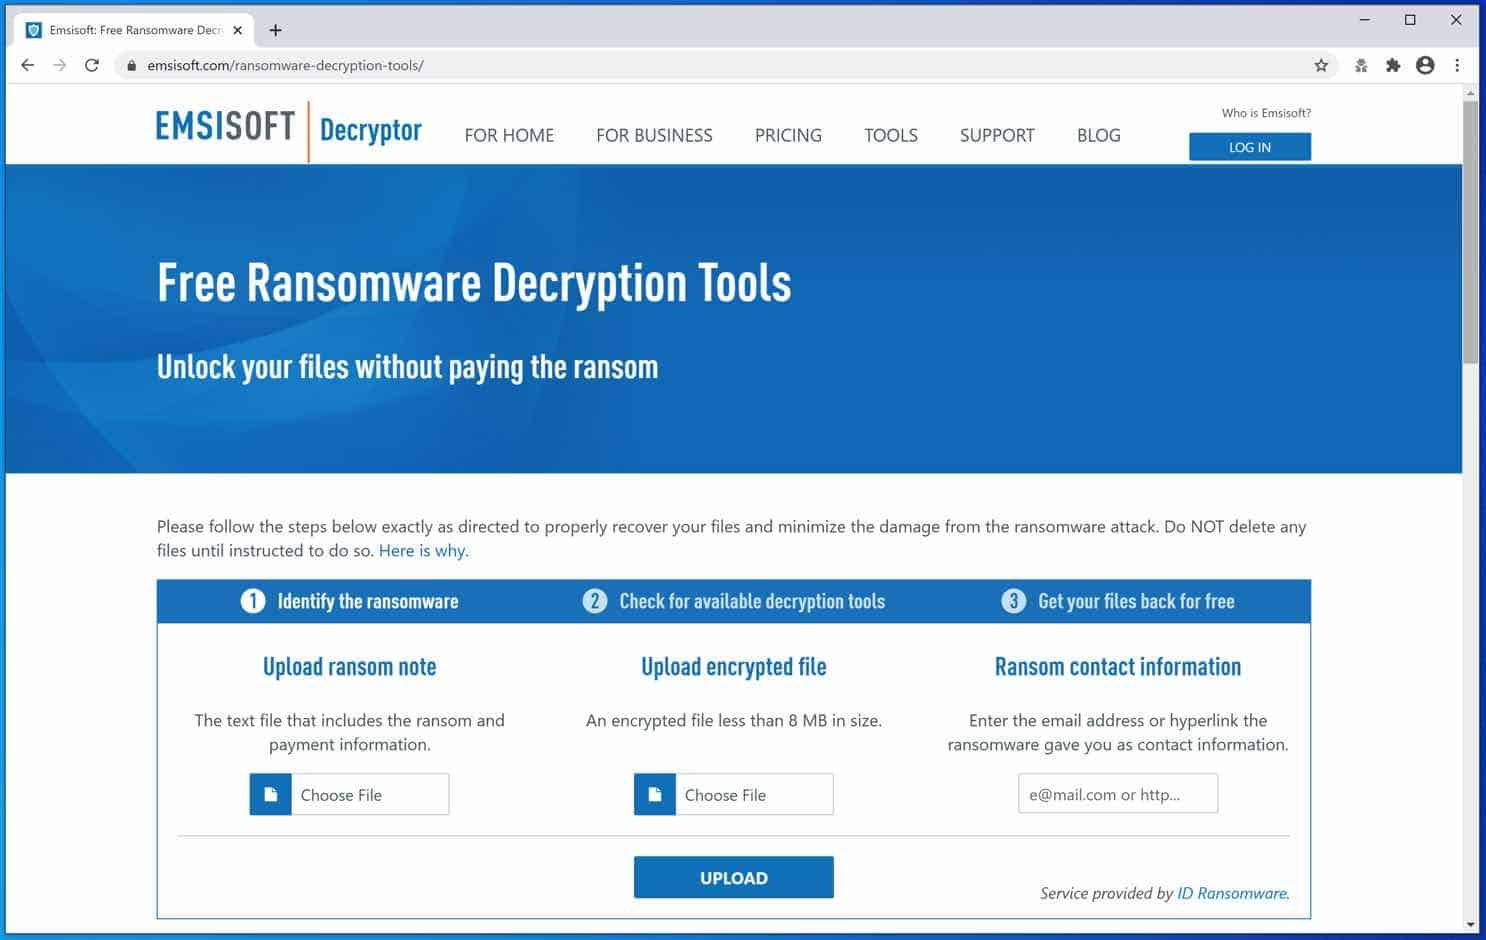 emsisoft ransomware decryption tools